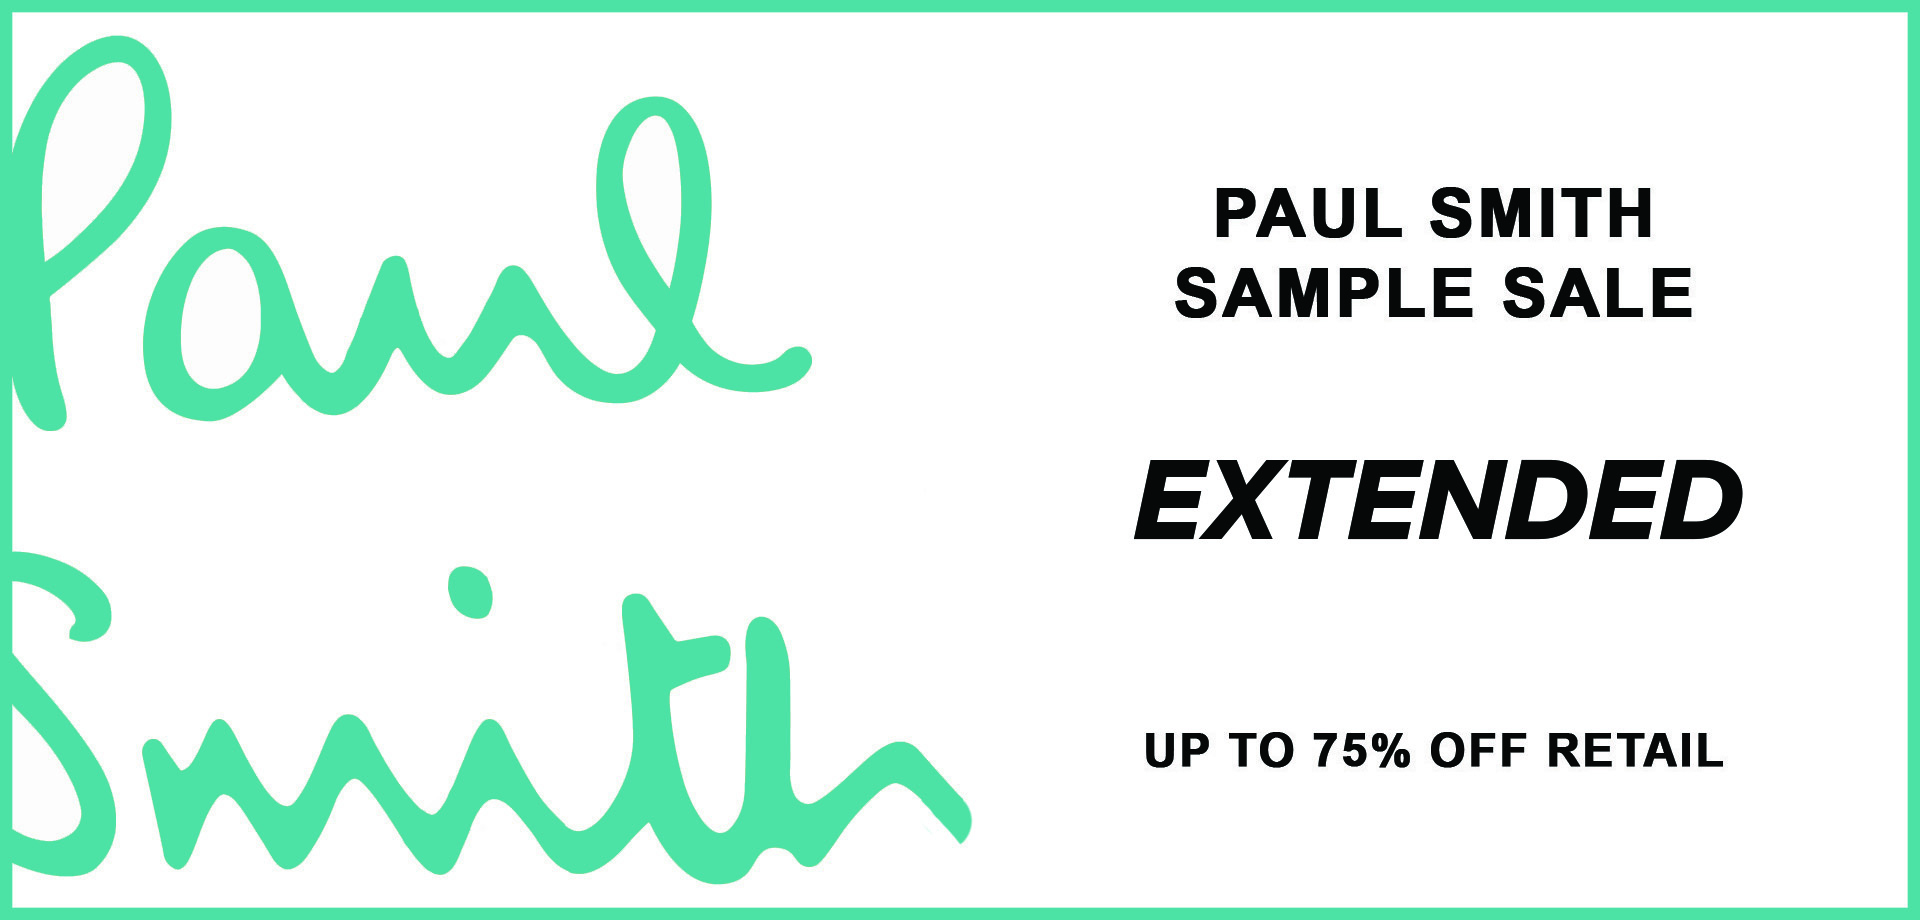 BANNER_EXTENDED_PAUL-SMITH-Sample-Sale_260NY_May19.jpg